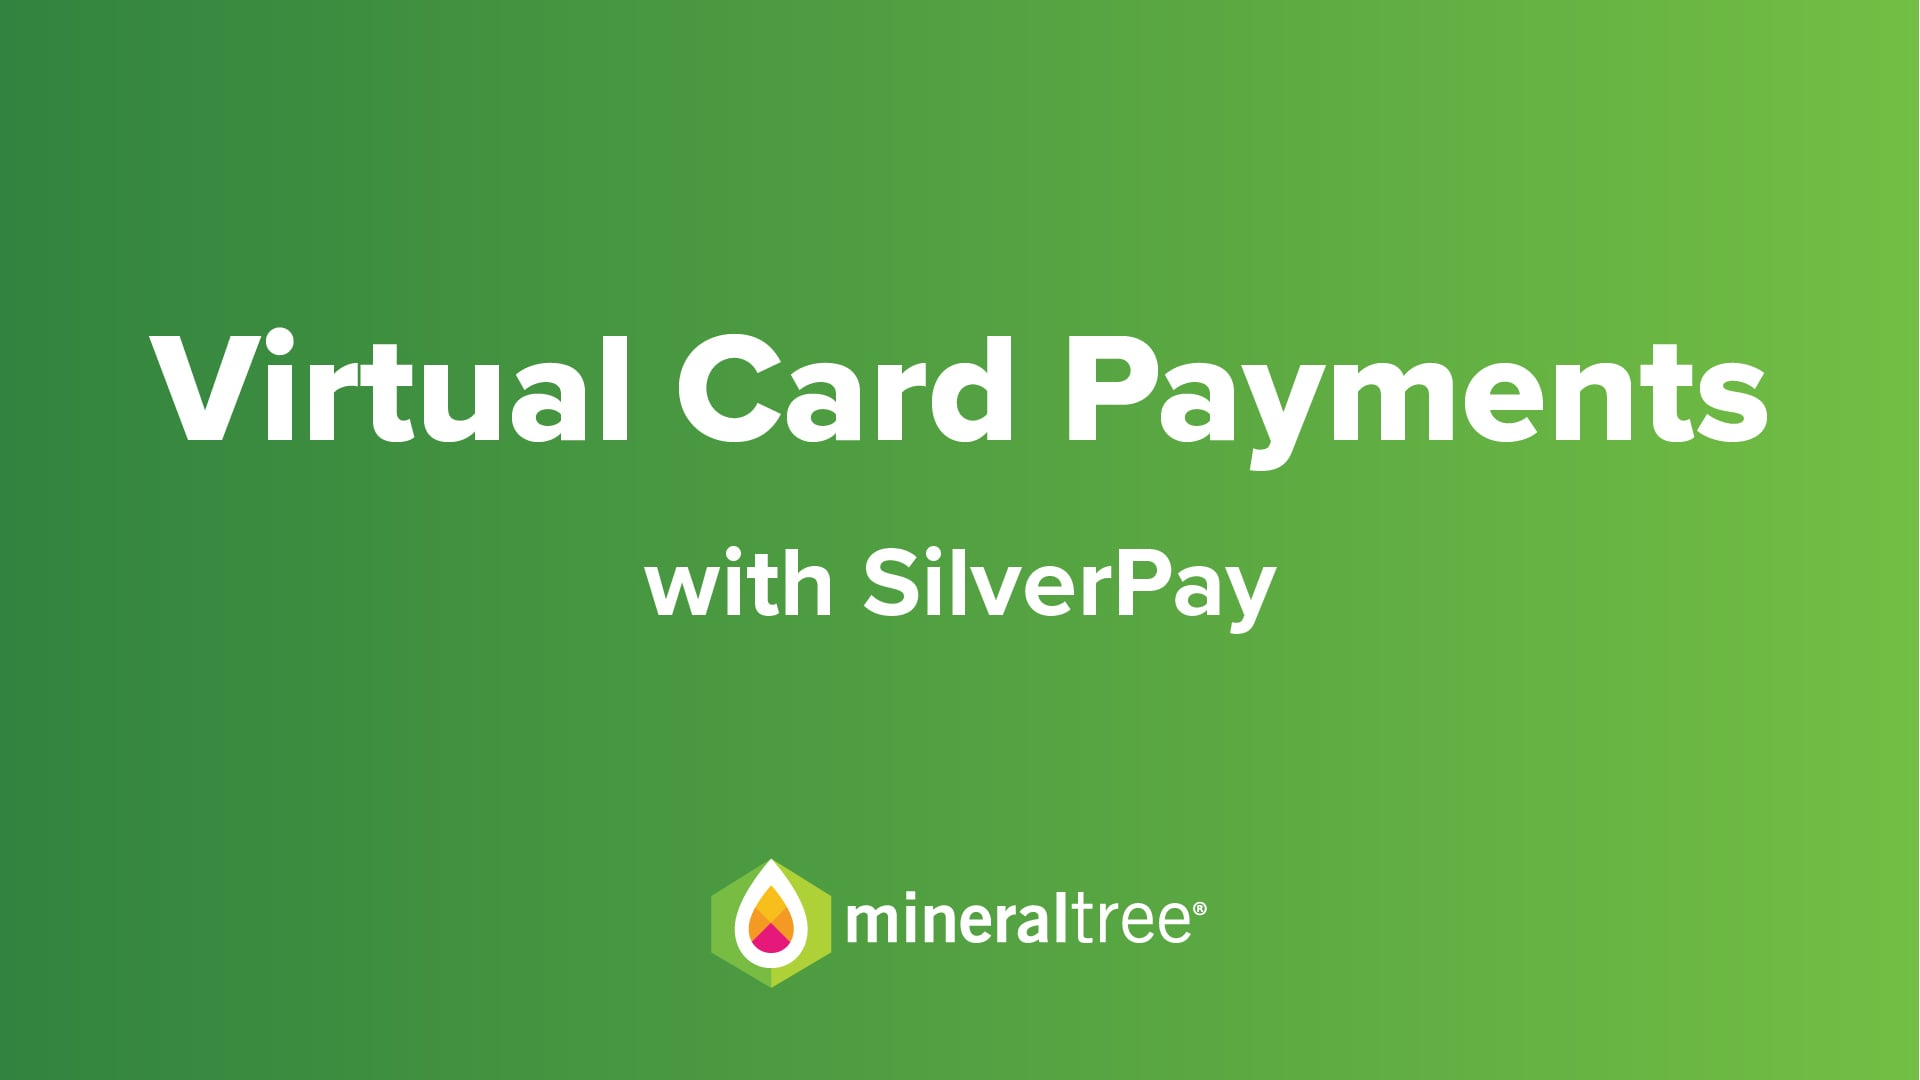 Virtual Card Payments with SilverPay